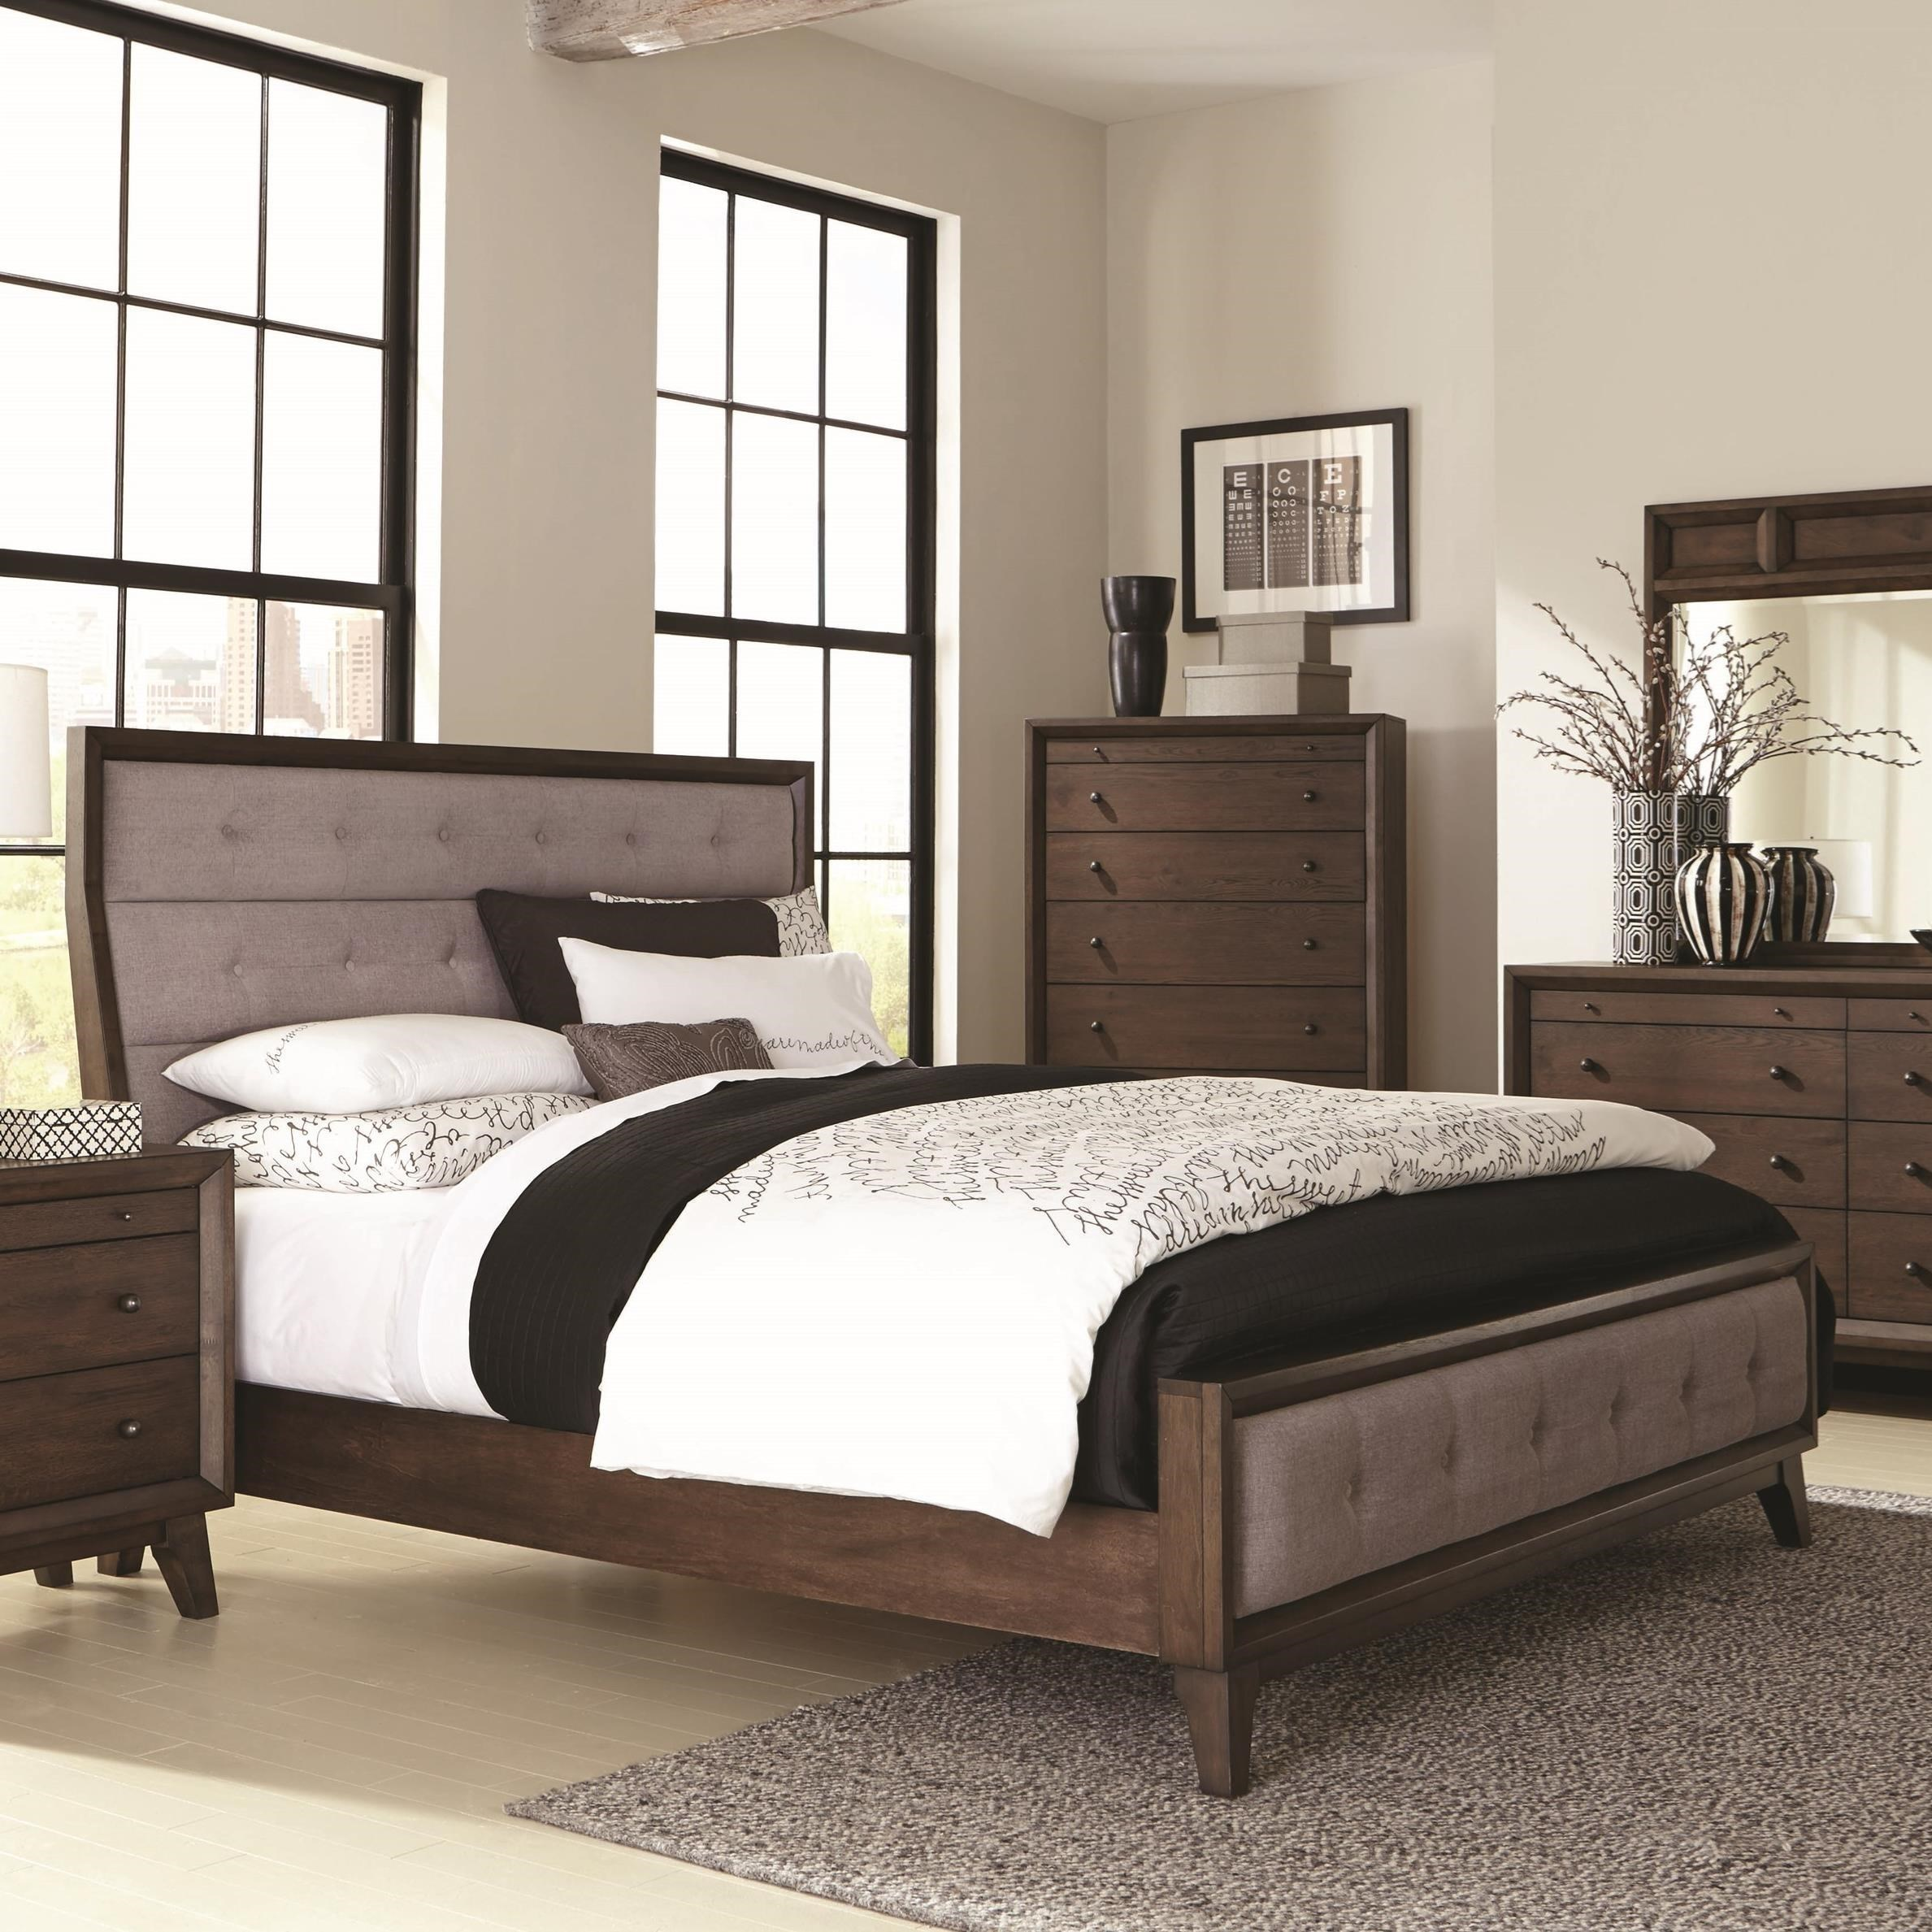 Bingham California King Upholstered Bed by Coaster at Value City Furniture